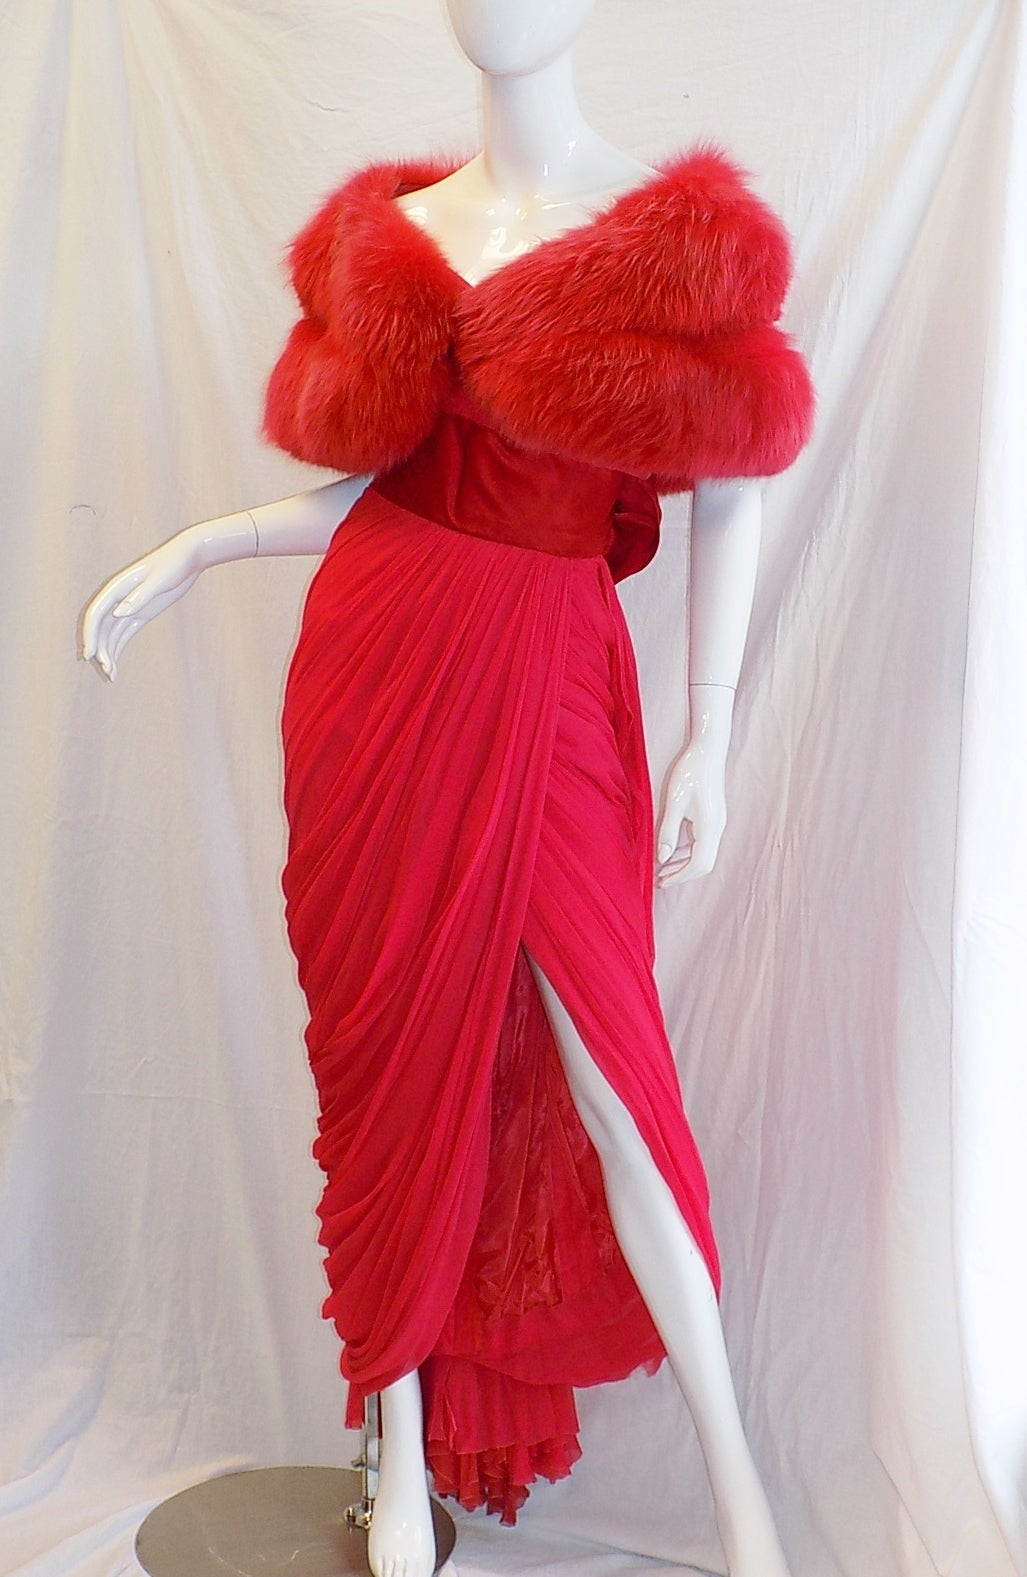 Breathtaking Jean Dessès red silk chiffon  gown. Spectacular draping featuring back bustle with two bows. Cherry on the top is pristine condition dyed fox to match red fur stole . Dress was well kept and  fur preserved. Immaculate condition with